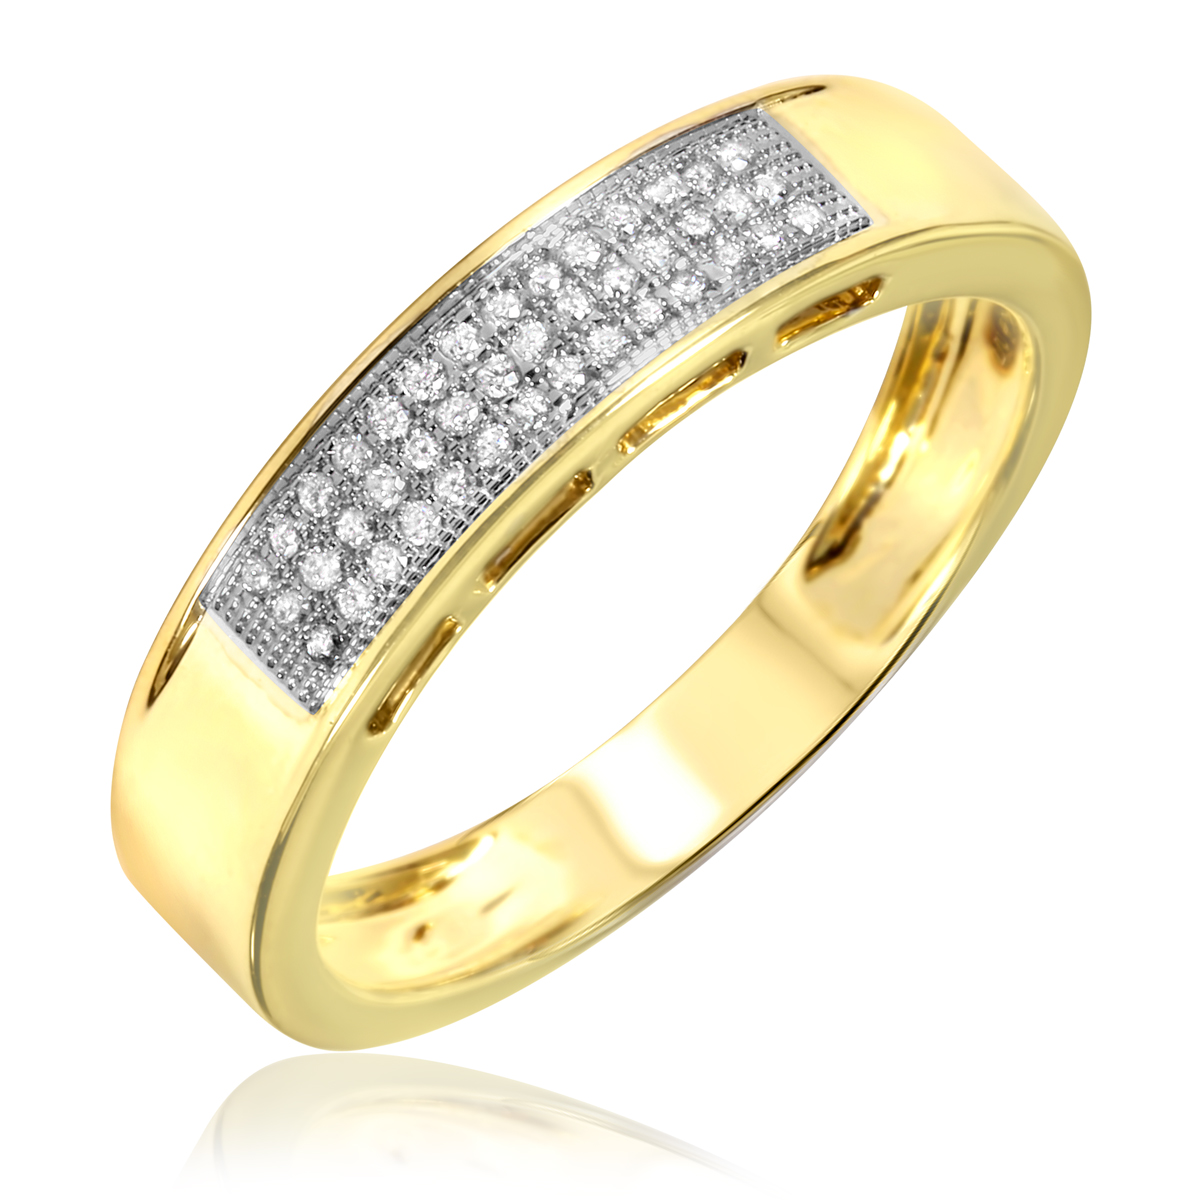 3 8 Carat Diamond Trio Wedding Ring Set 10K Yellow Gold